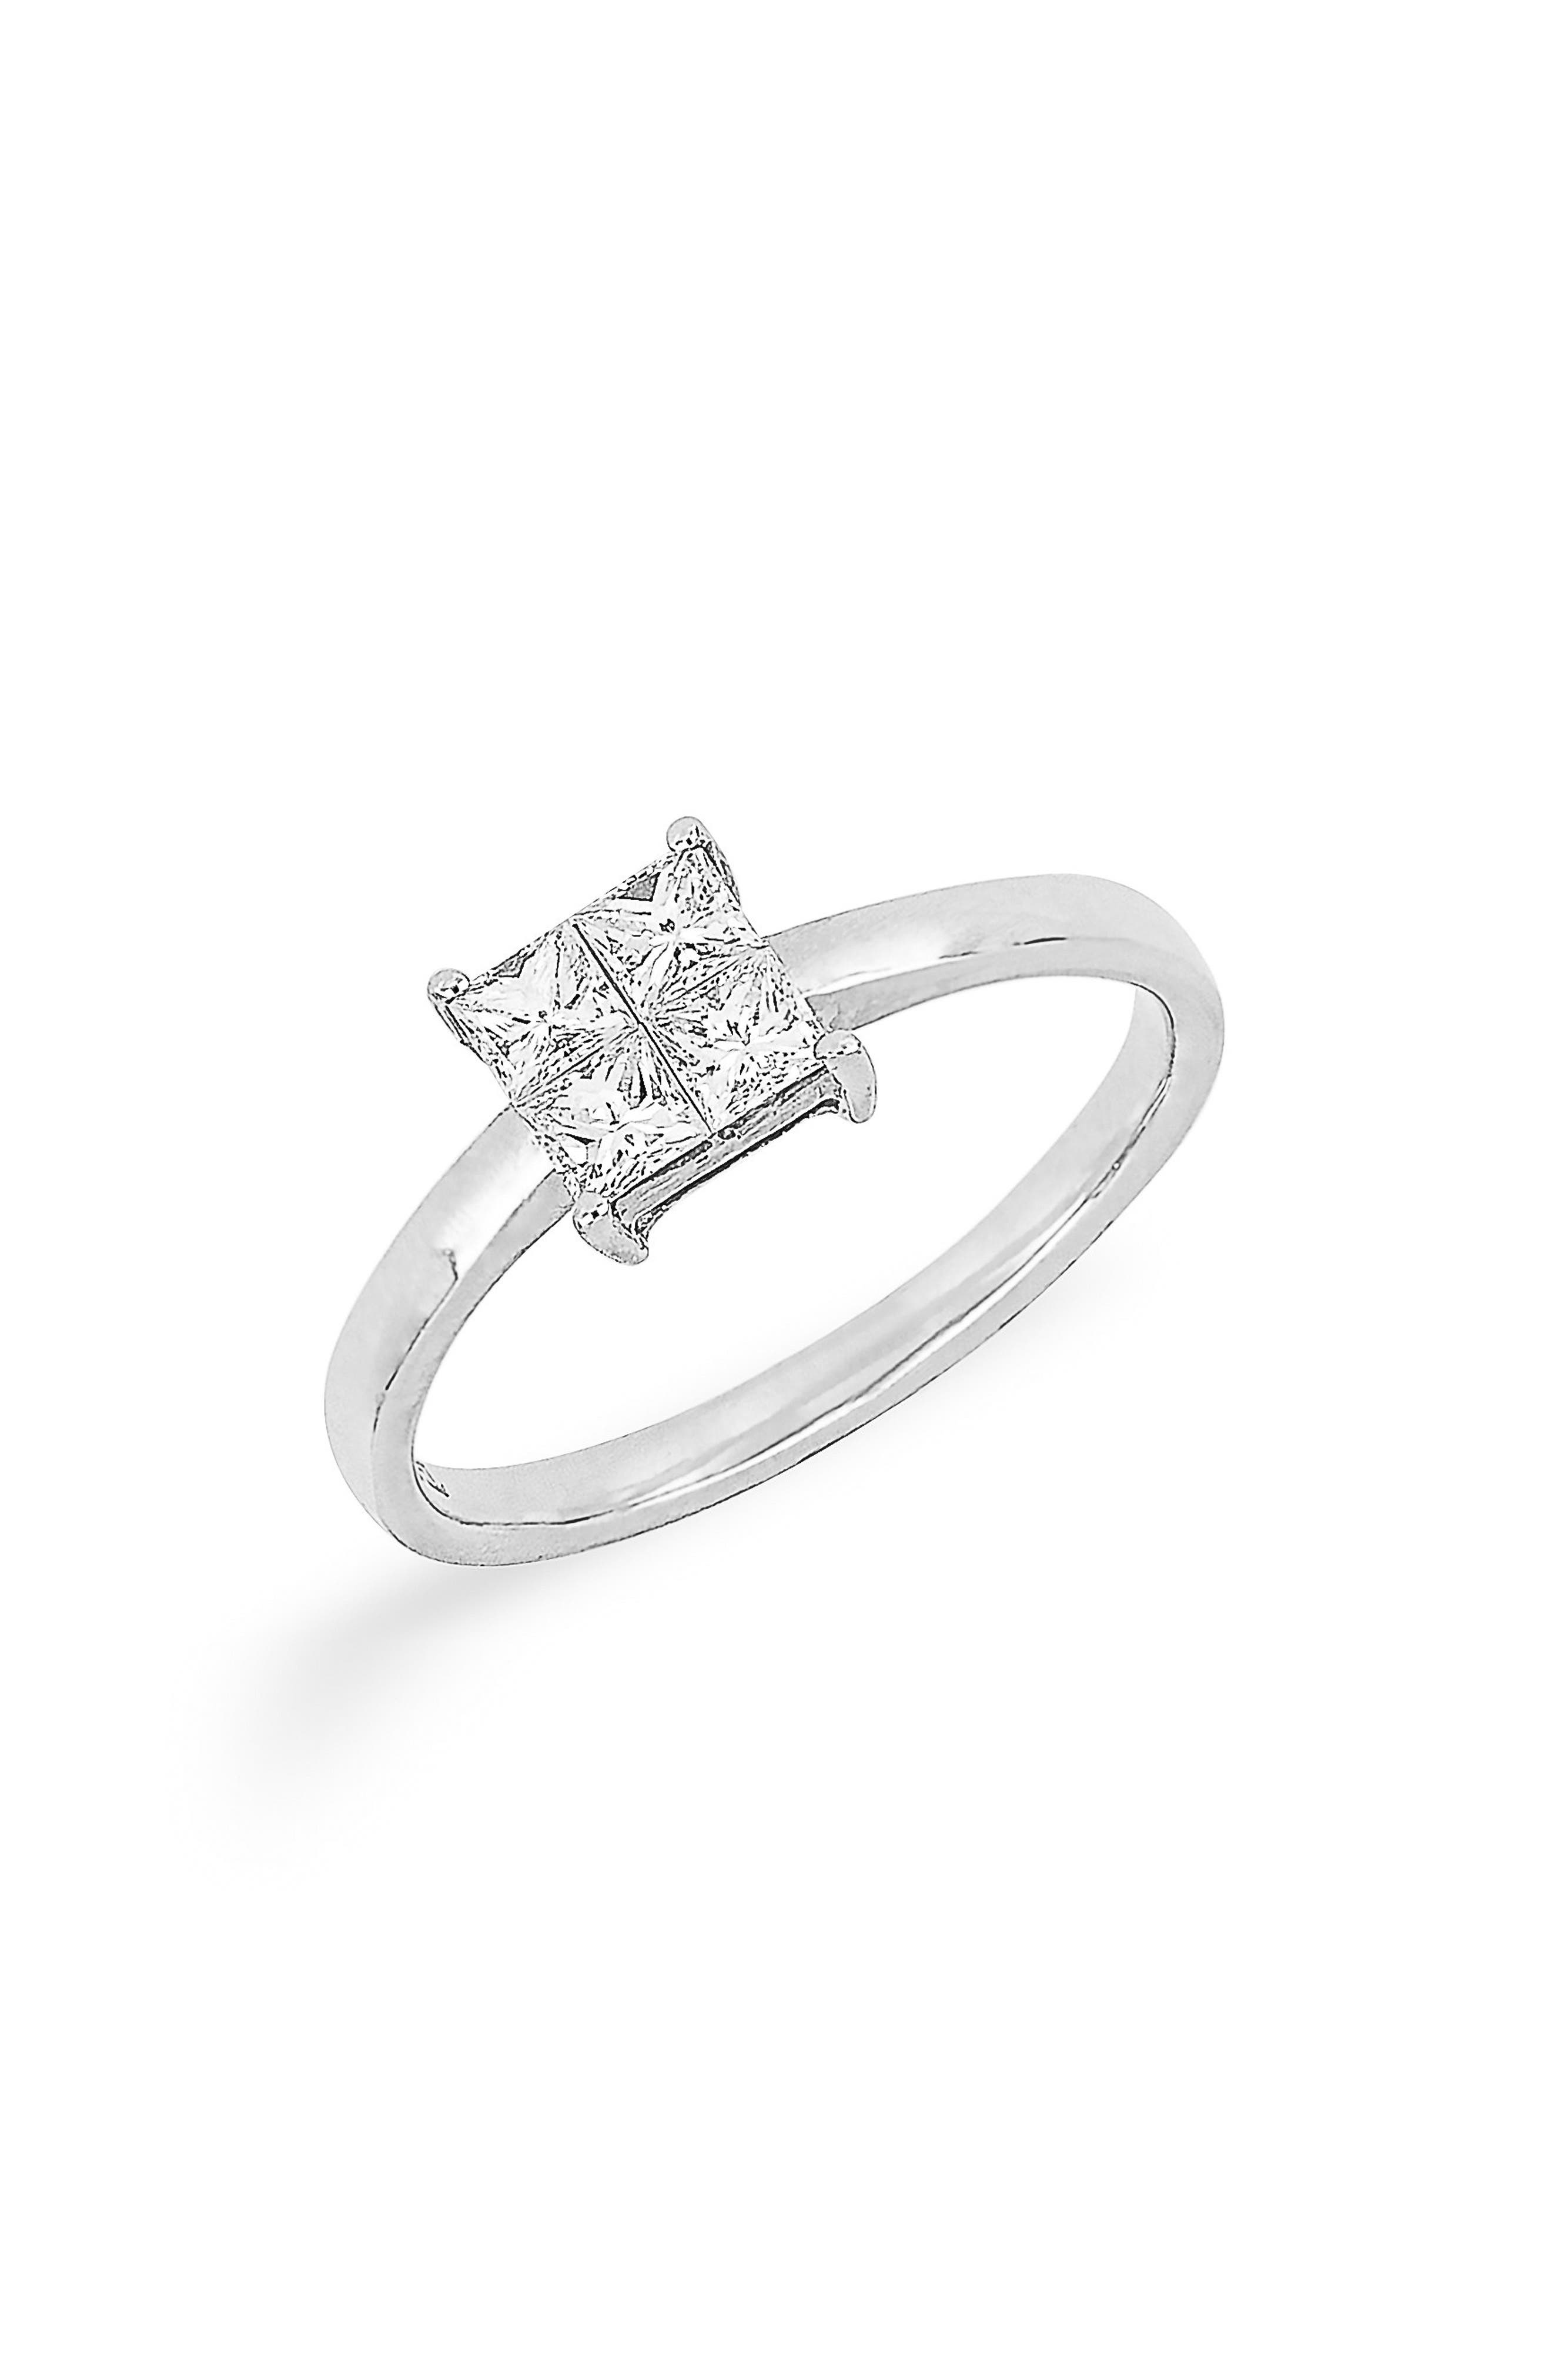 Princess Cut Diamond Ring,                         Main,                         color, White Gold